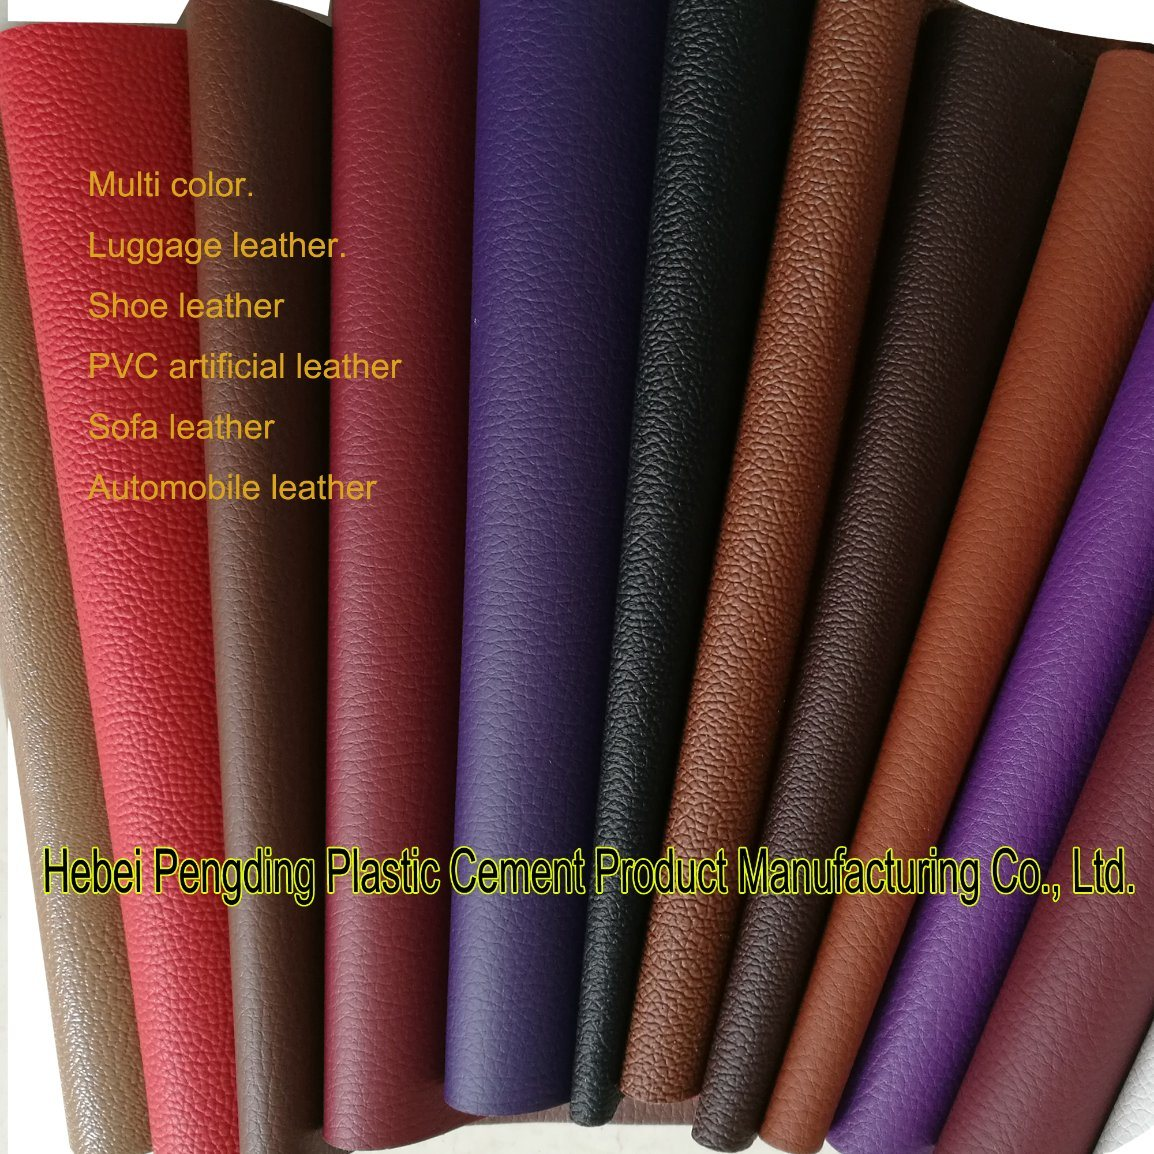 SGS Gold Certification Z038 PVC Outdoor Sports Shoe Leather Artificial Leather PVC Leather